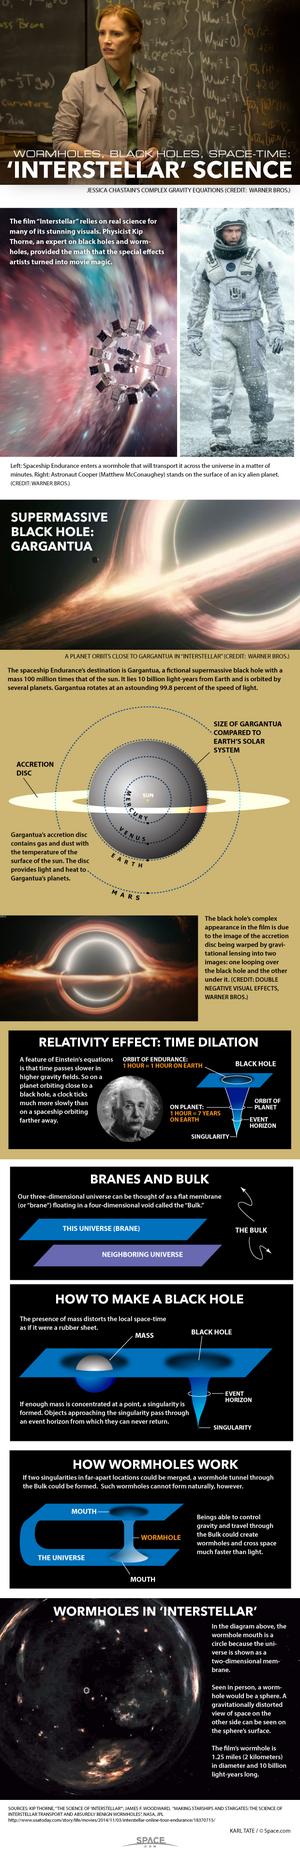 """Wormhole travel across the universe and supergiant black holes are just some of the wonders seen in the film """"Interstellar."""" <a href=""""http://www.space.com/27692-science-of-interstellar-infographic.html"""">See how the science of """"Interstellar"""" works in this infographic</a>."""